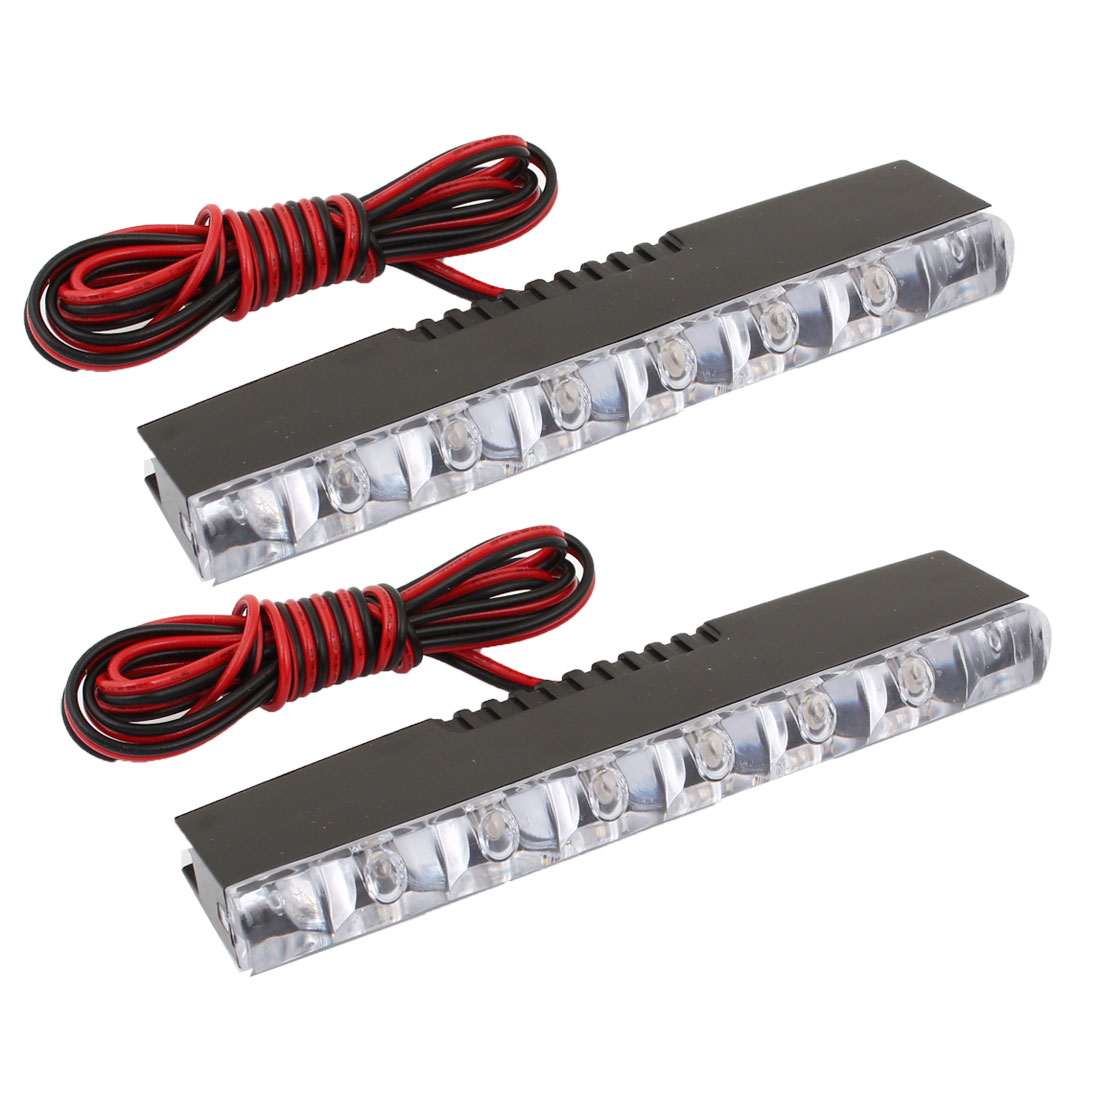 2 Pcs DC 12V Van Car Truck White 6 LED DRL Daytime Running Lamp Light